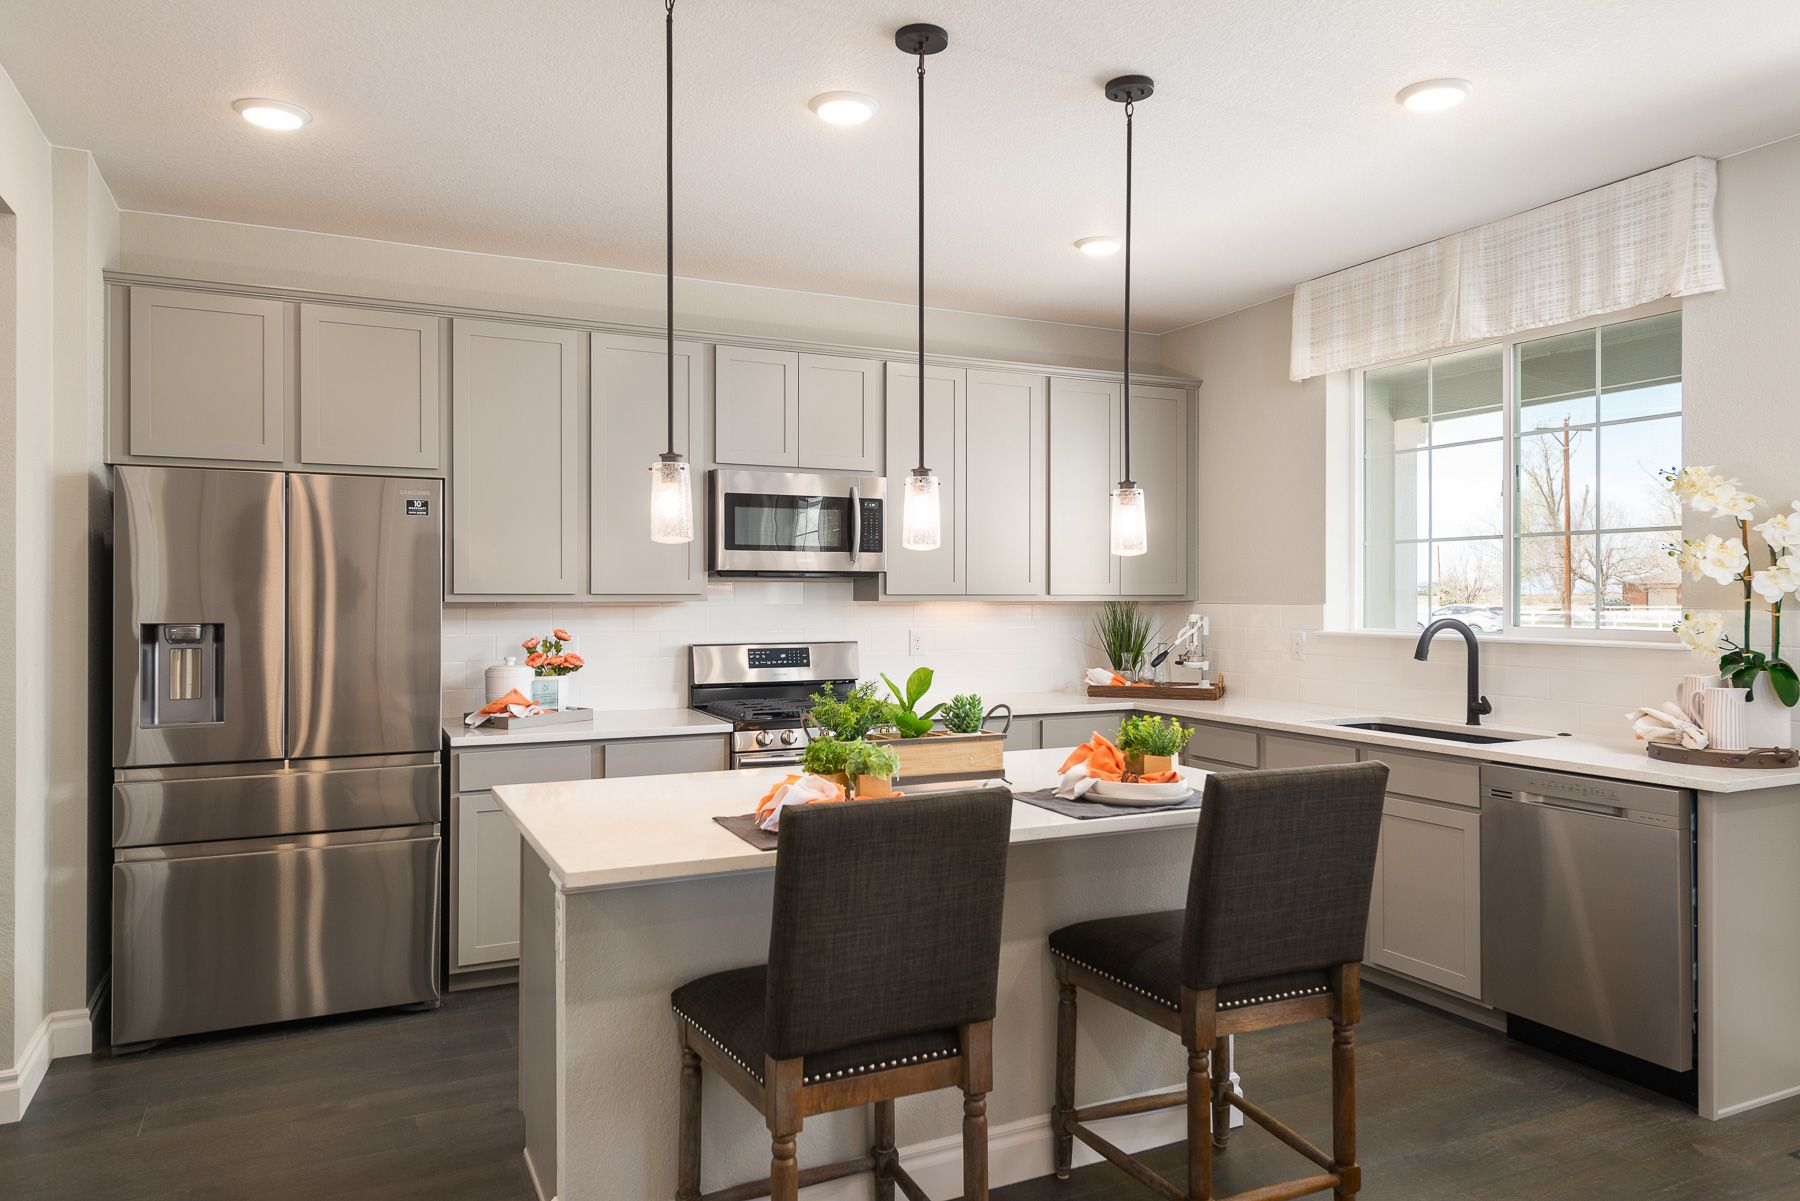 Kitchen featured in the Christian By Lokal Homes in Denver, CO